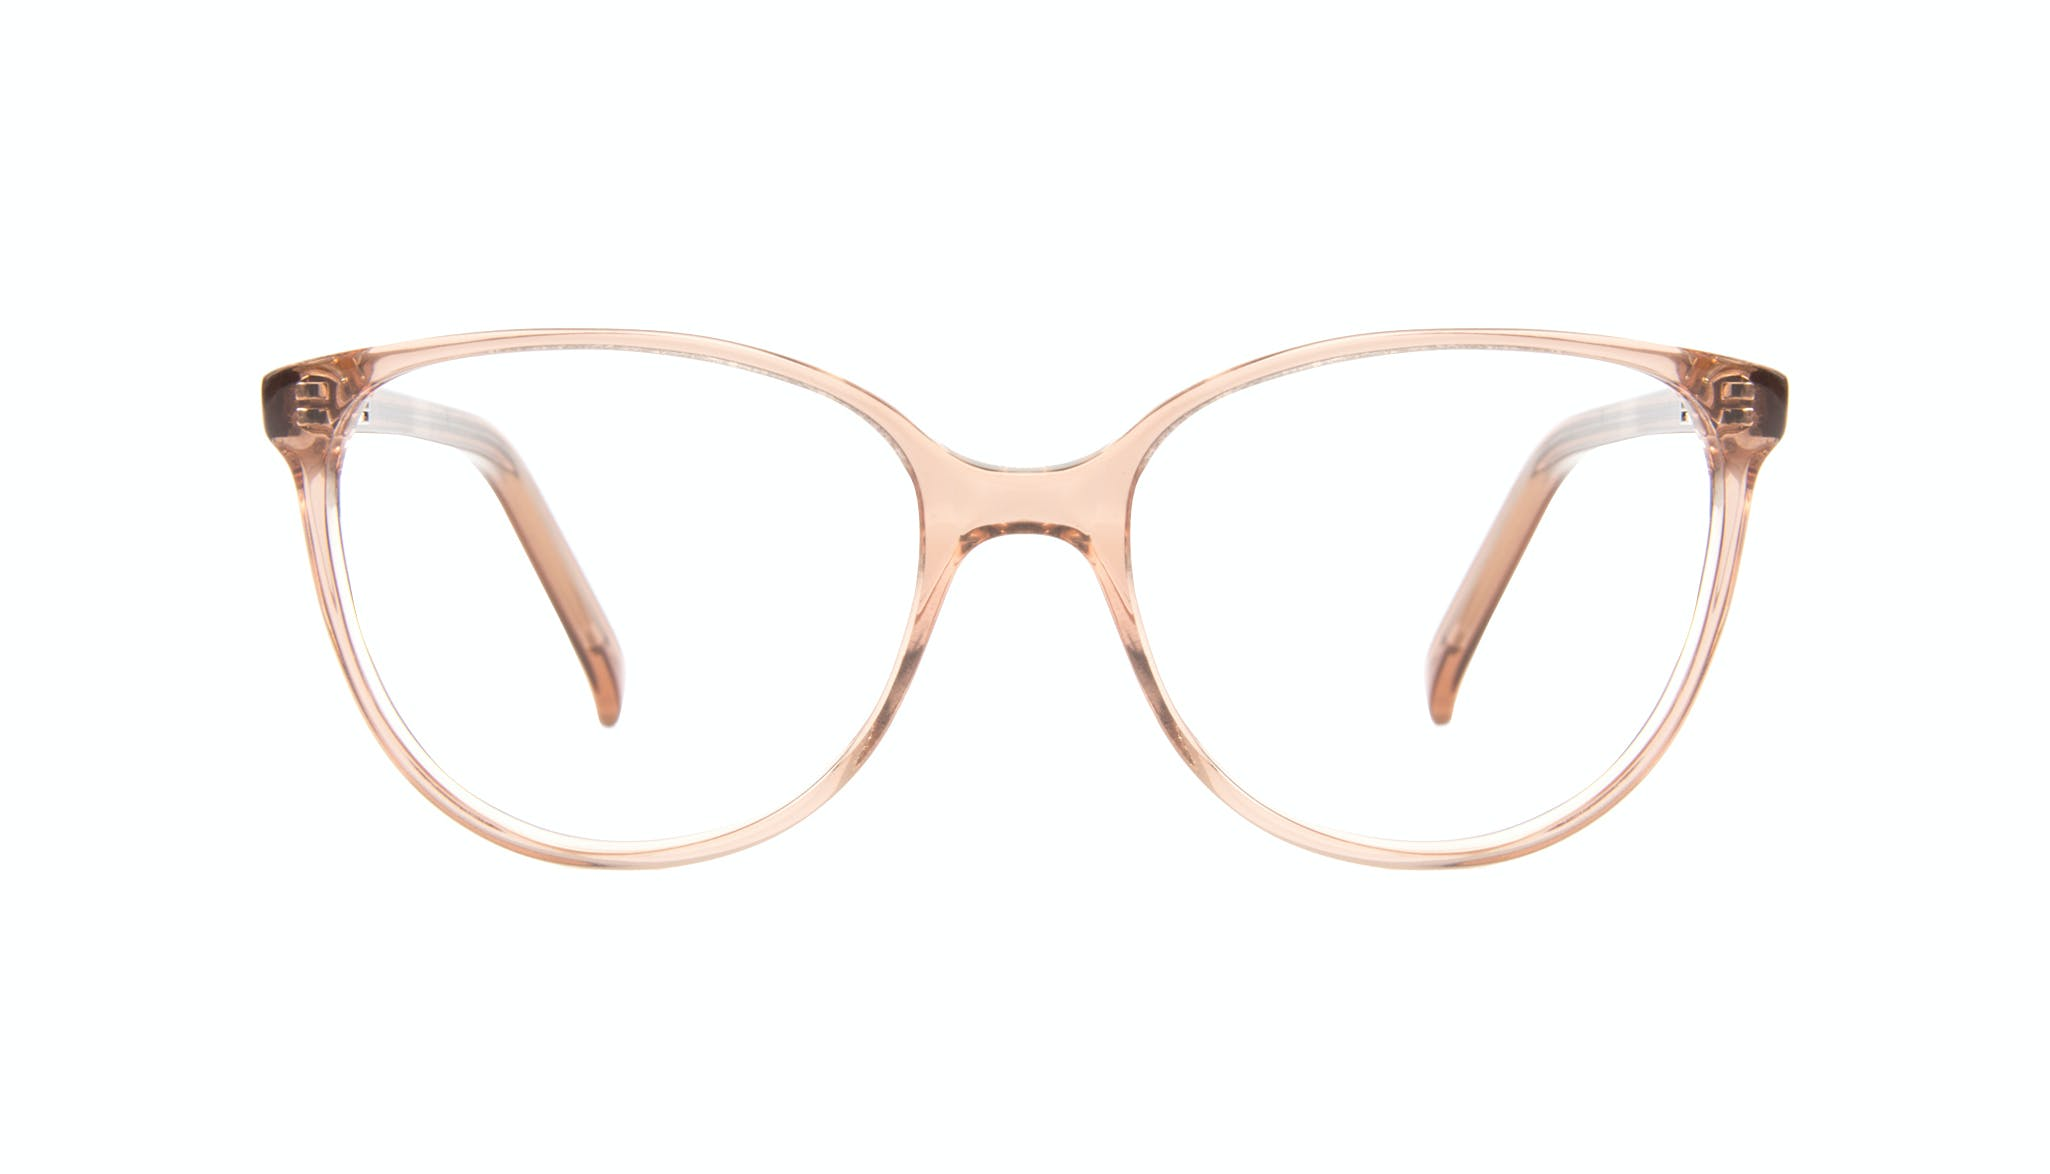 Affordable Fashion Glasses Cat Eye Eyeglasses Women Imagine Petite Rose